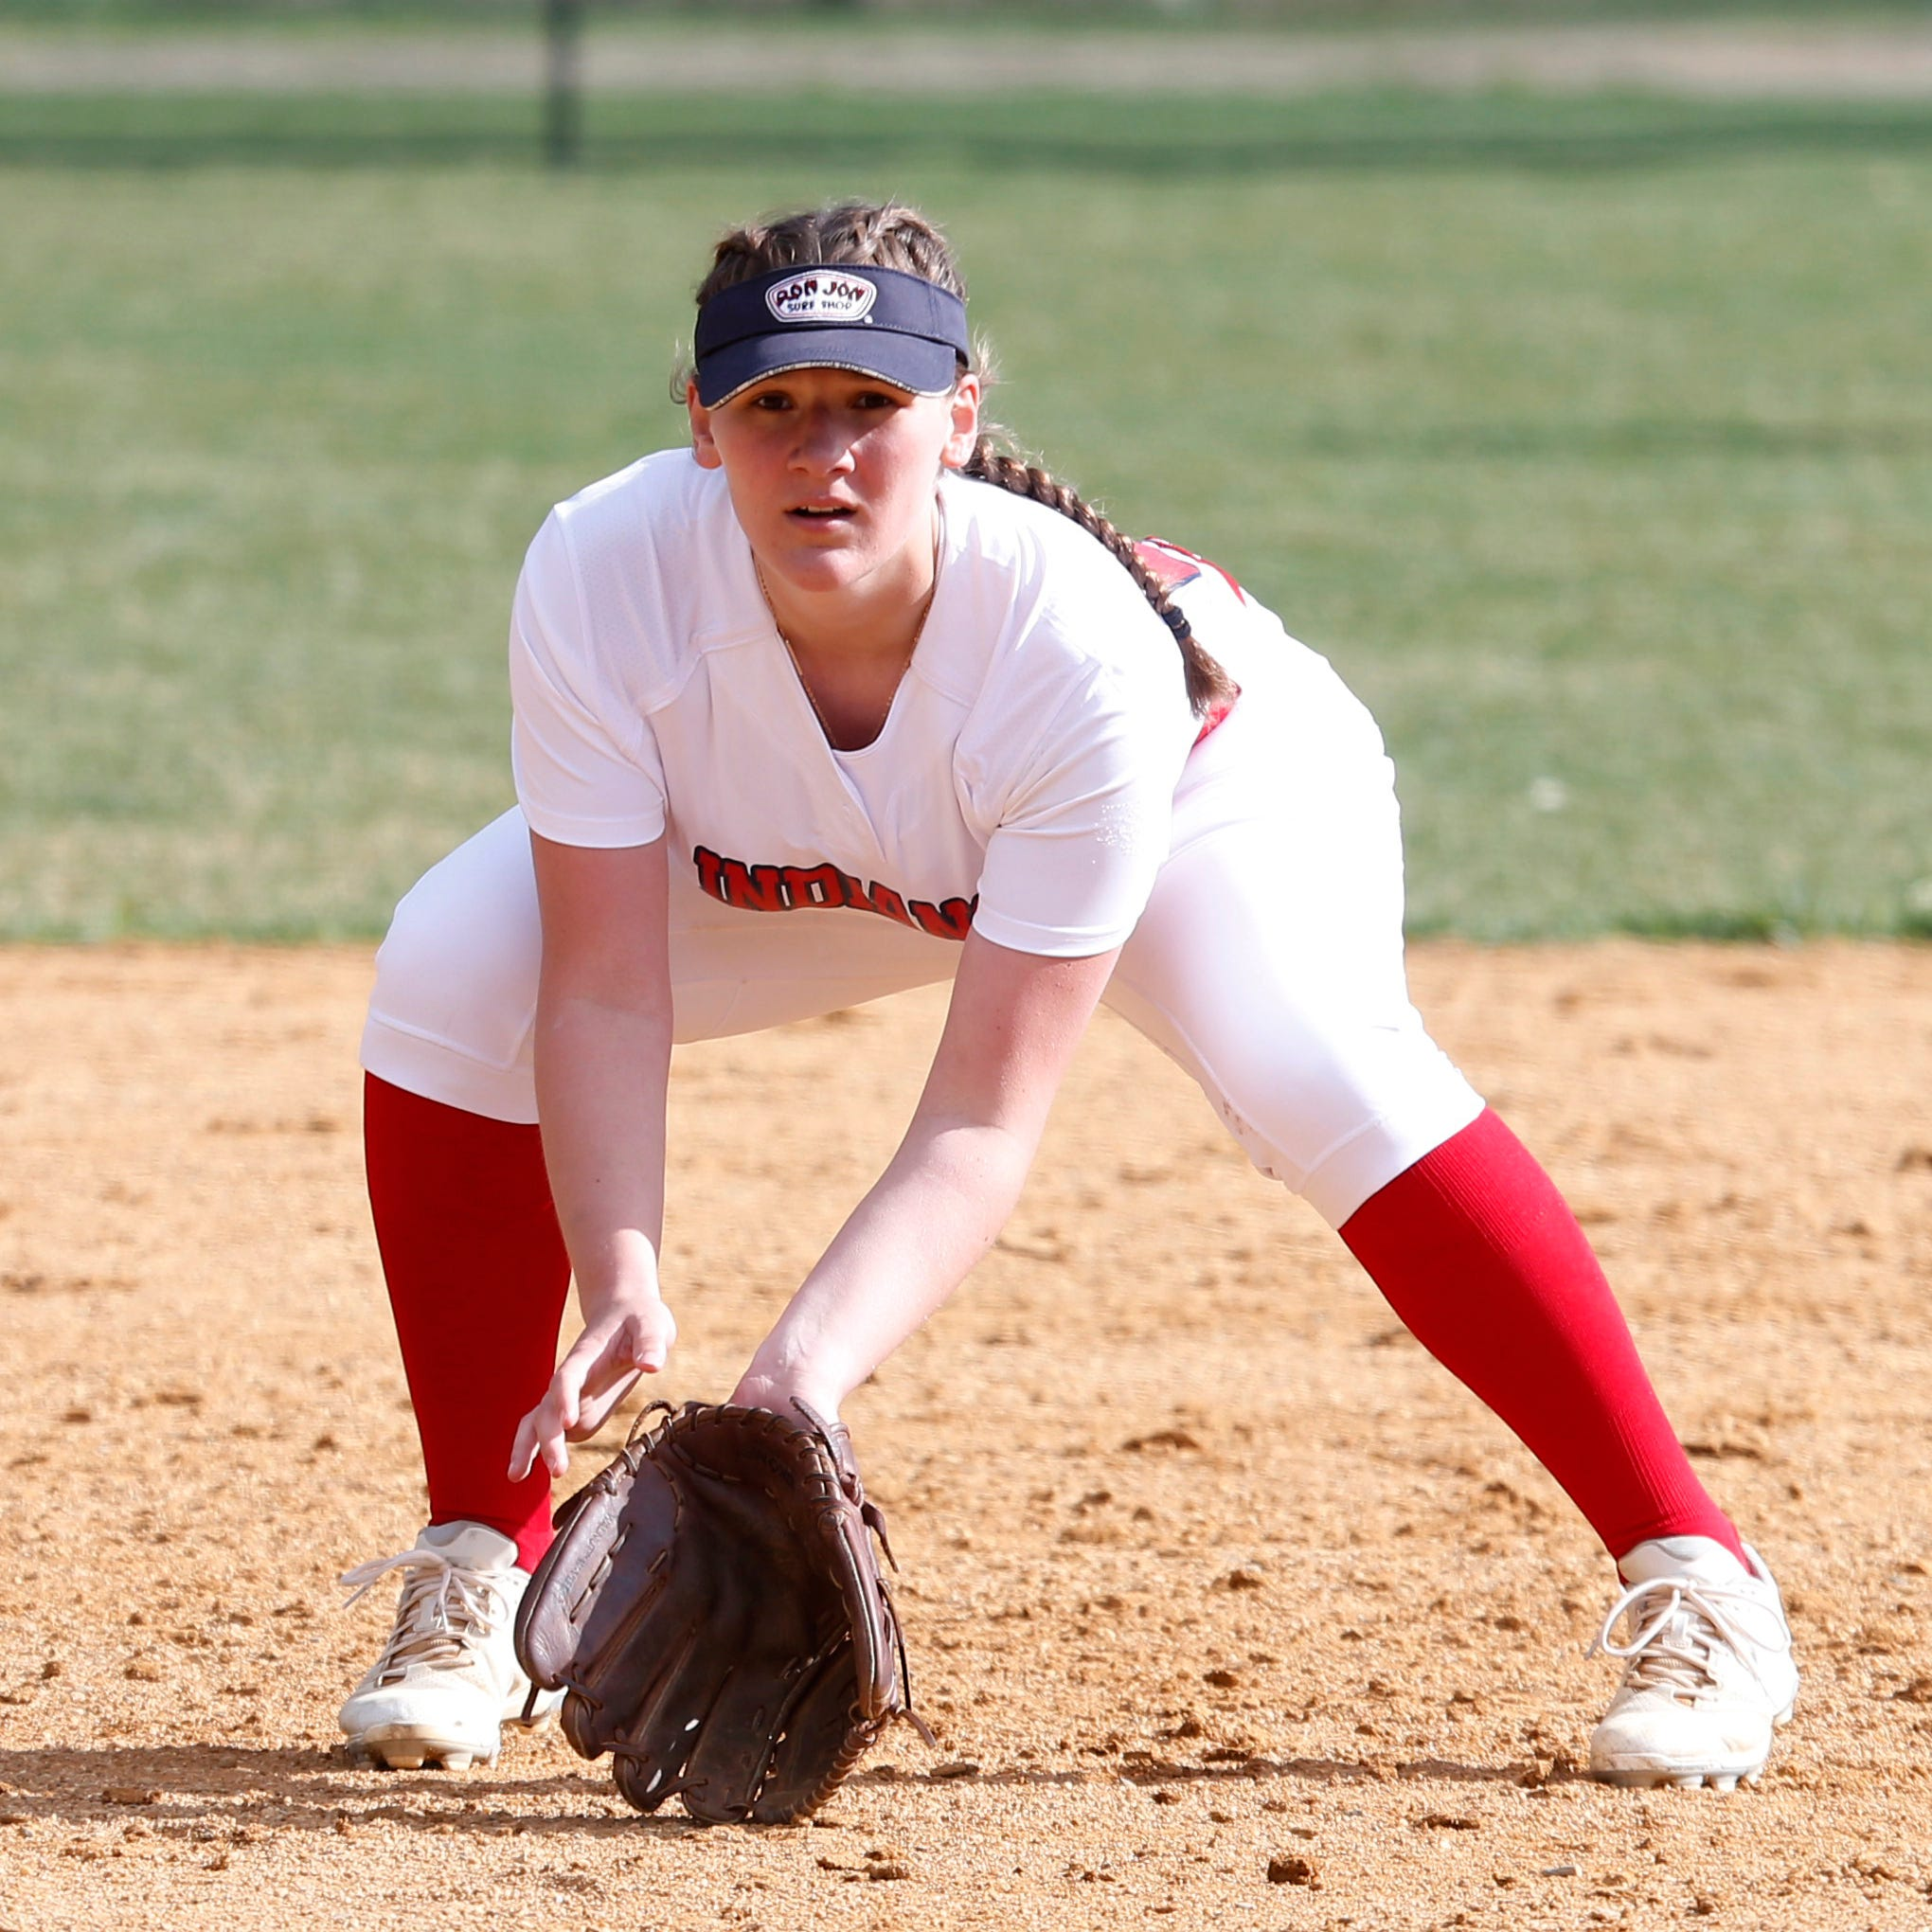 Ketcham's Helena Van Benschoten, after surviving deadly illness, returns to softball